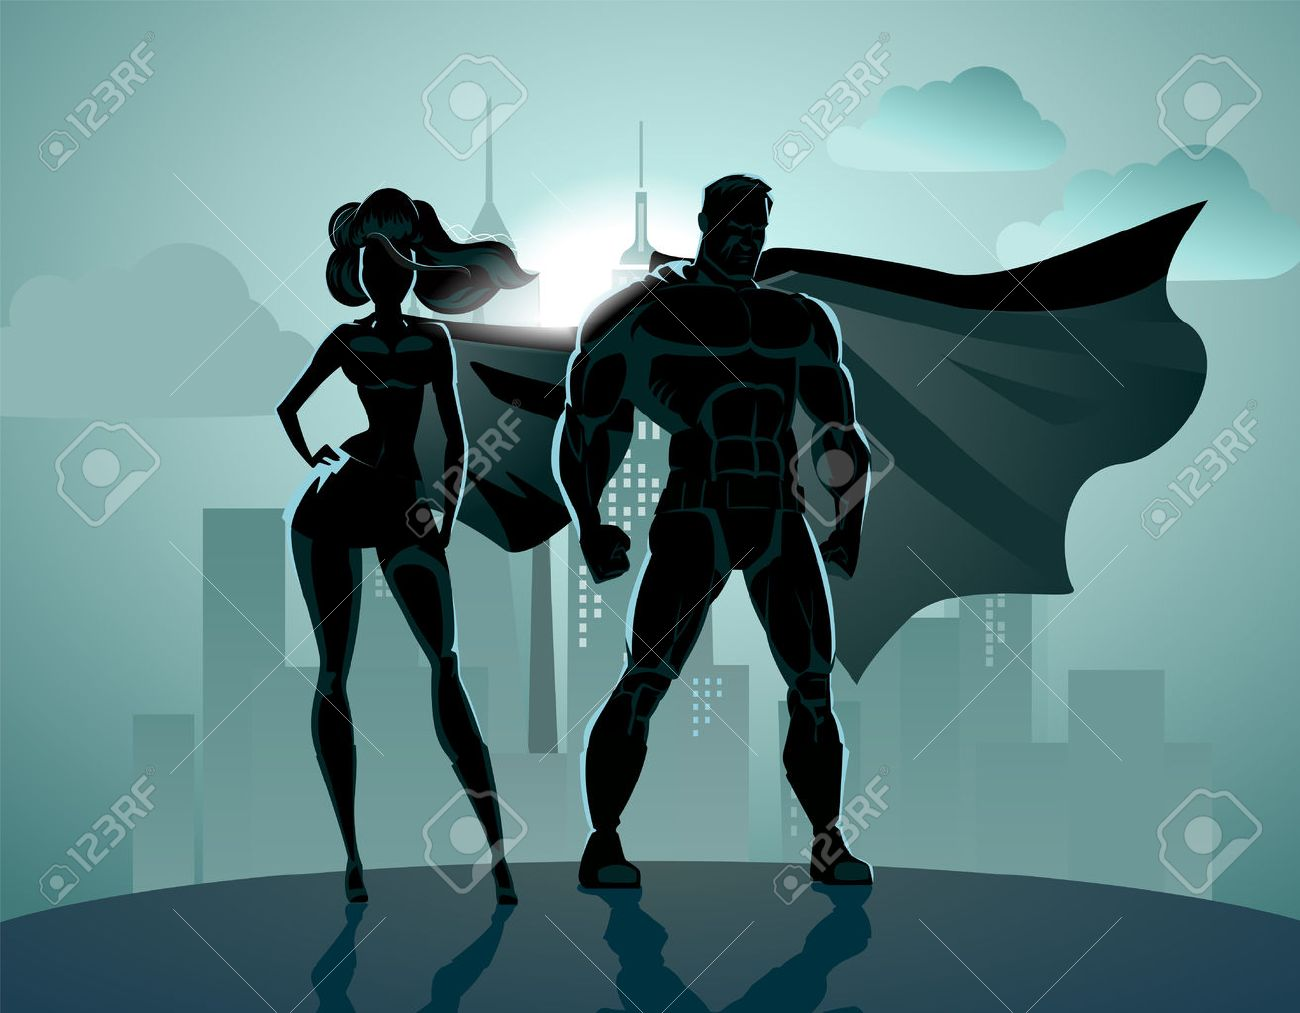 Superhero Couple: Male and female superheroes, posing in front of a light. City background. - 36953260